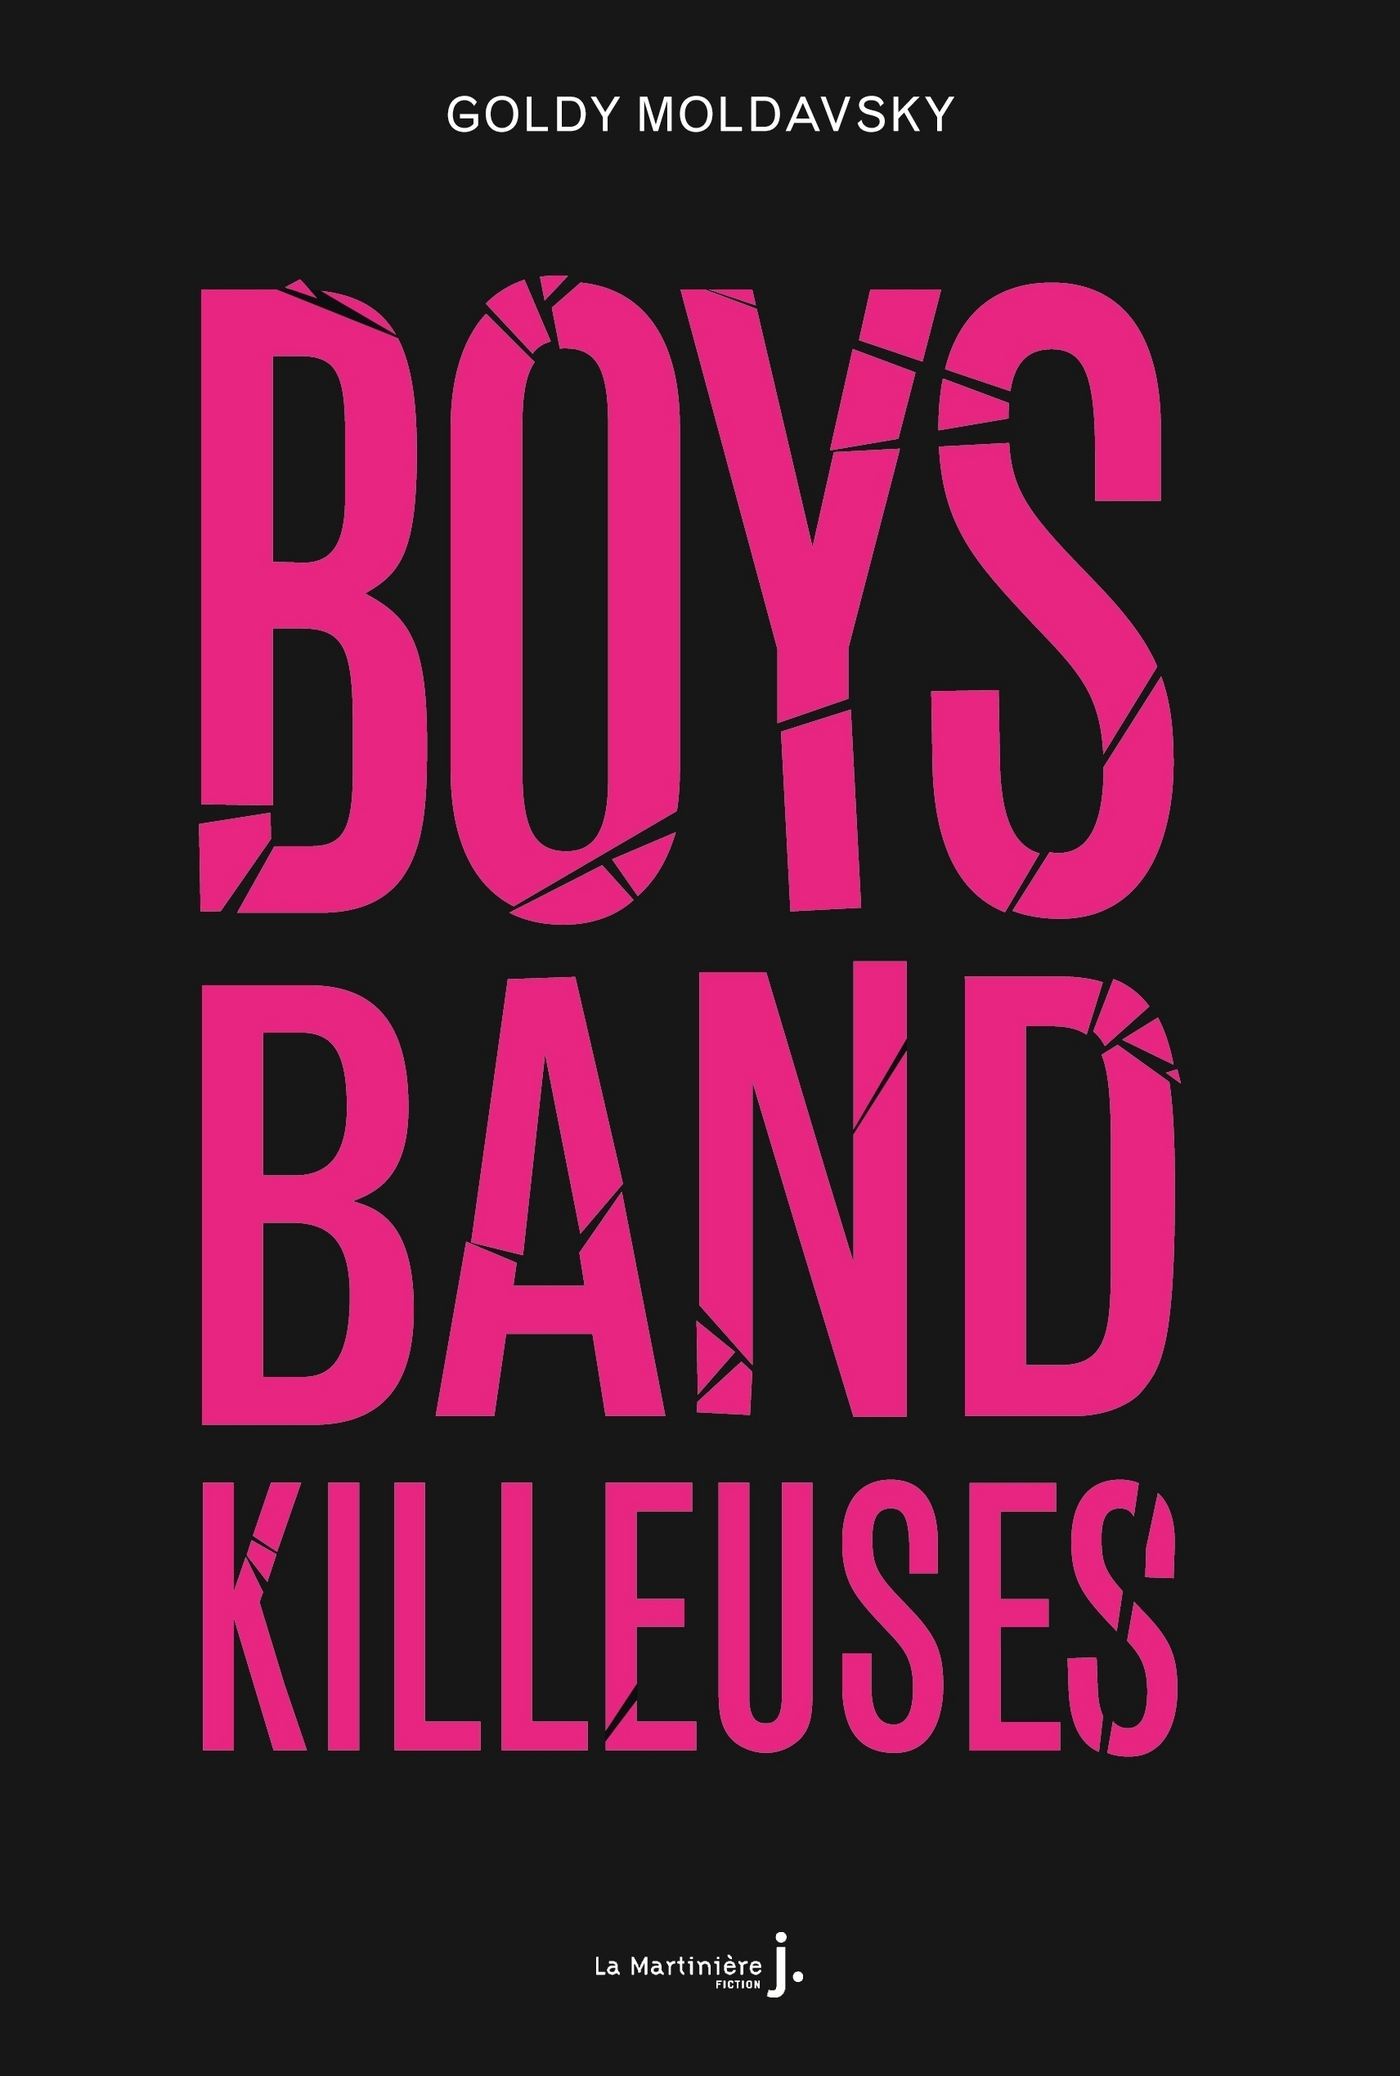 Boys band killeuses | Moldavsky, Goldy